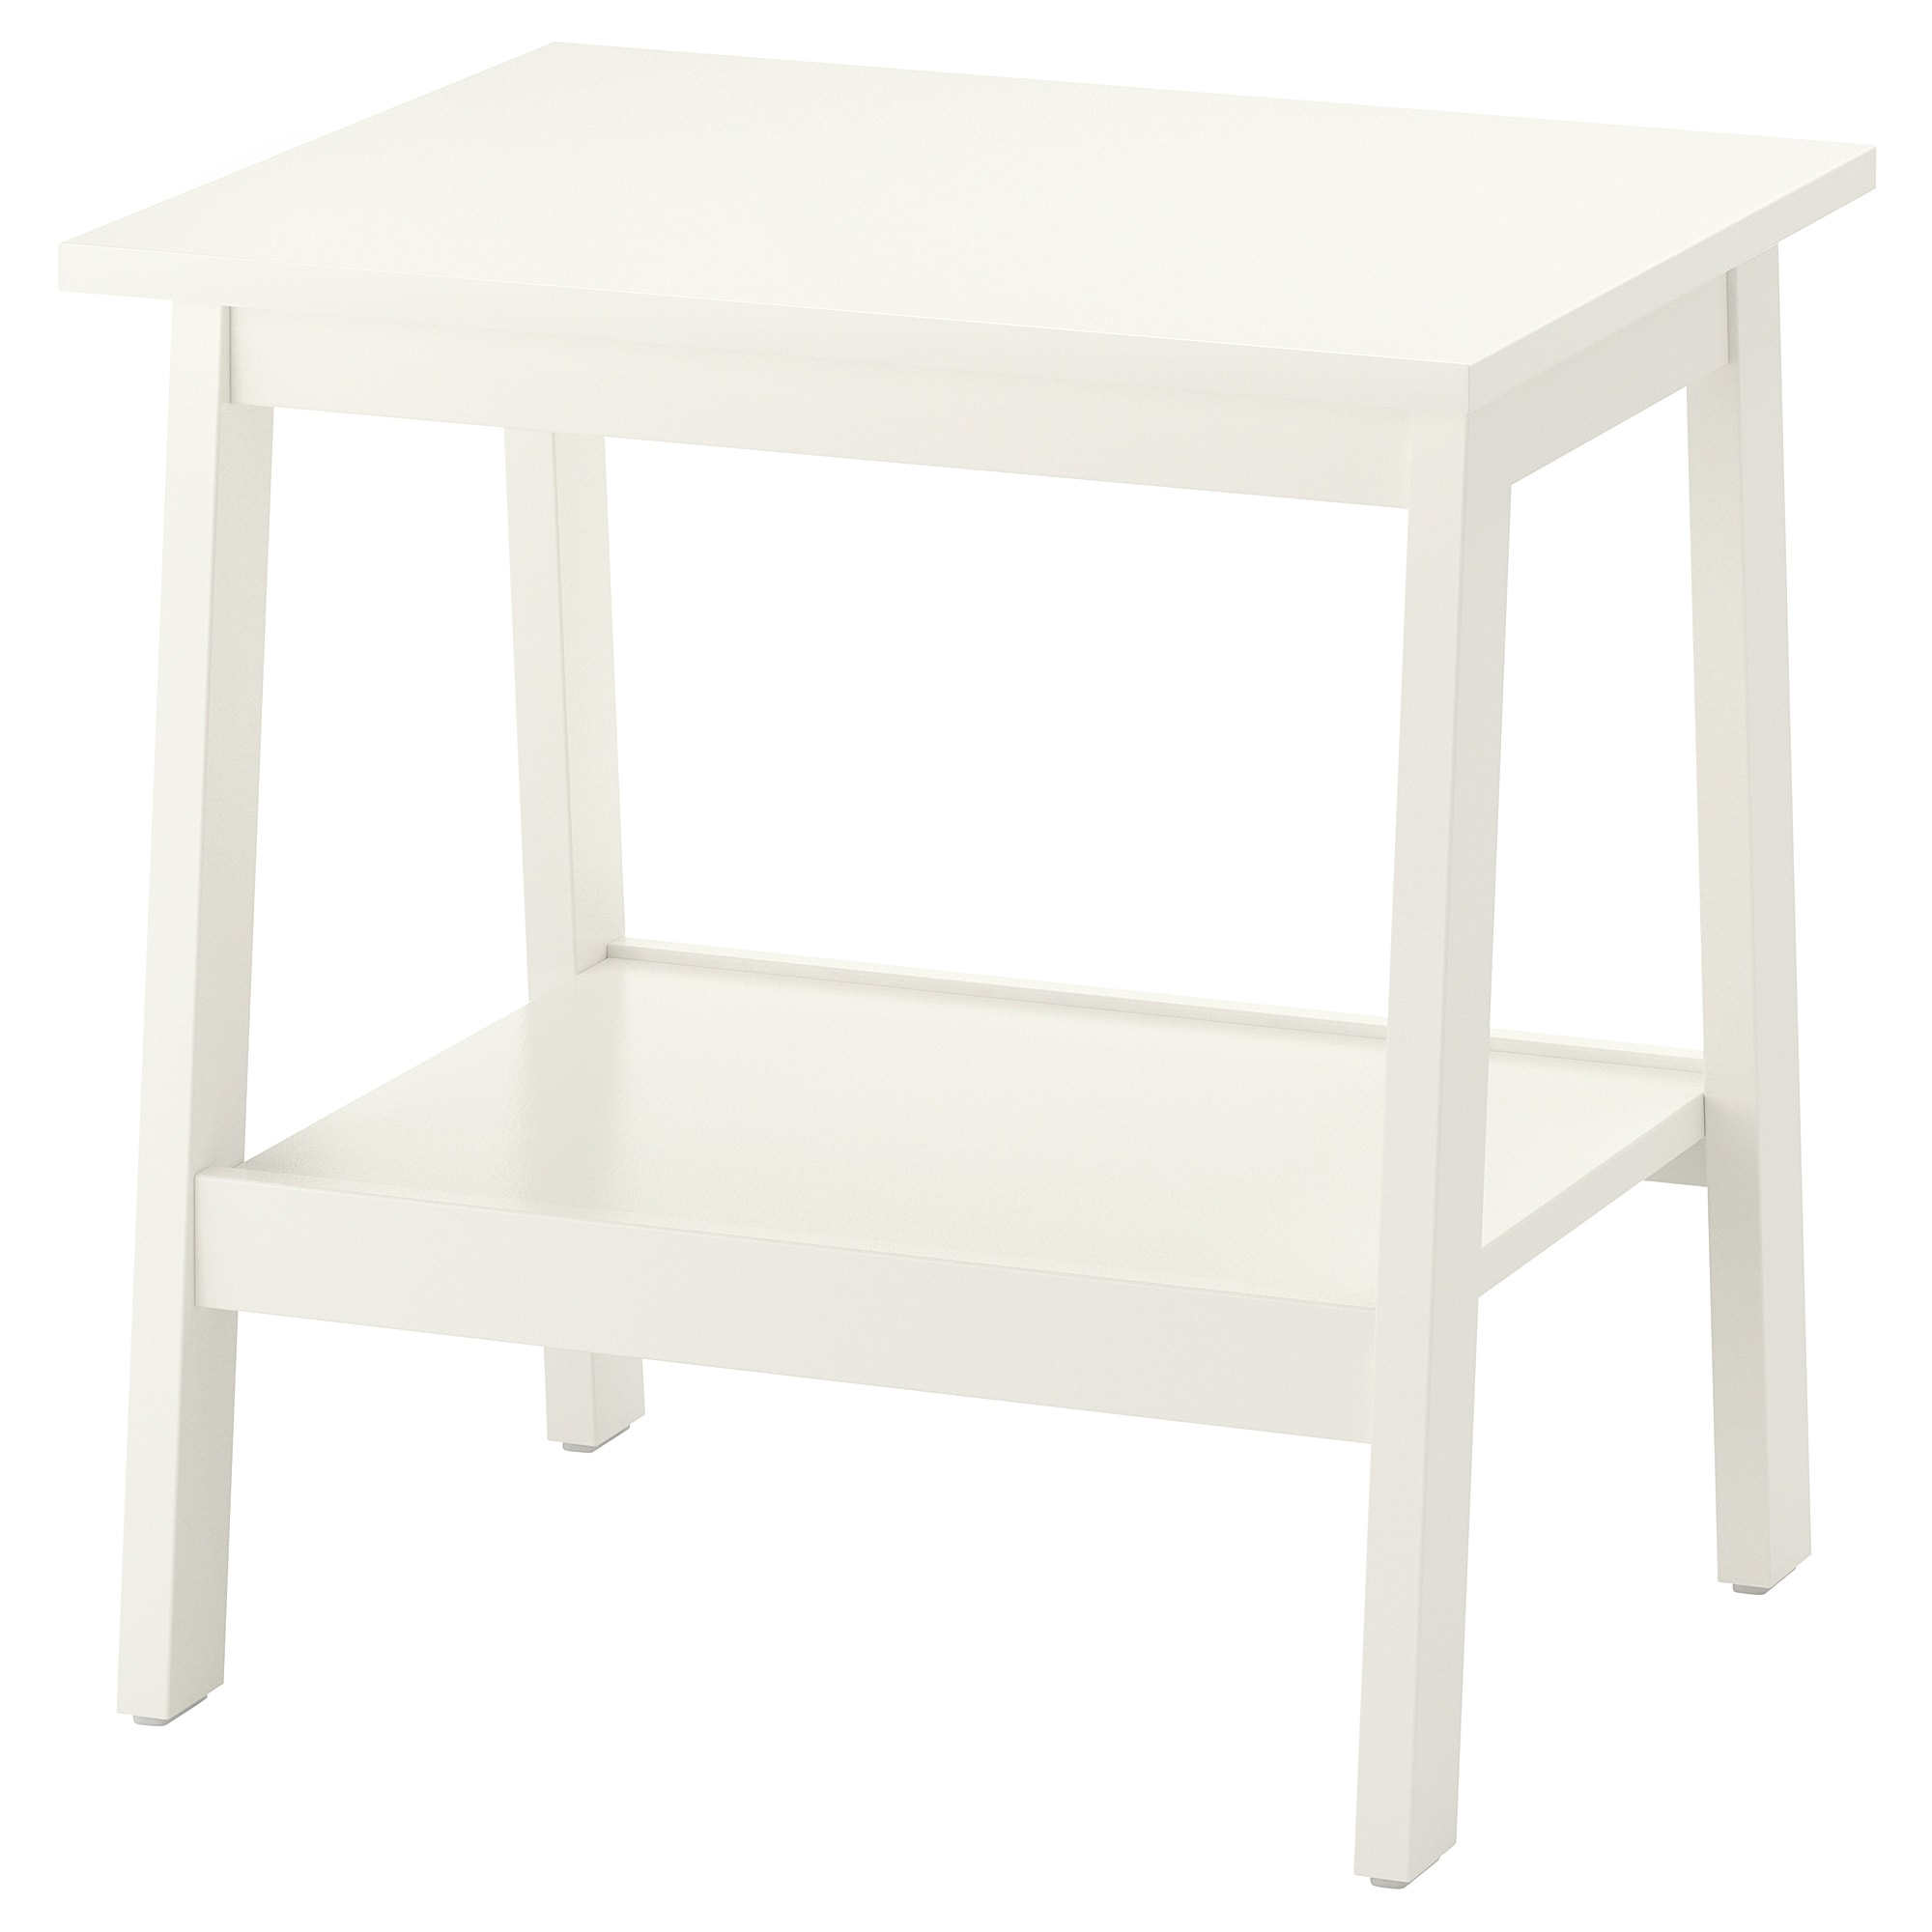 Table D'appoint Ikea Lunnarp Side Table White